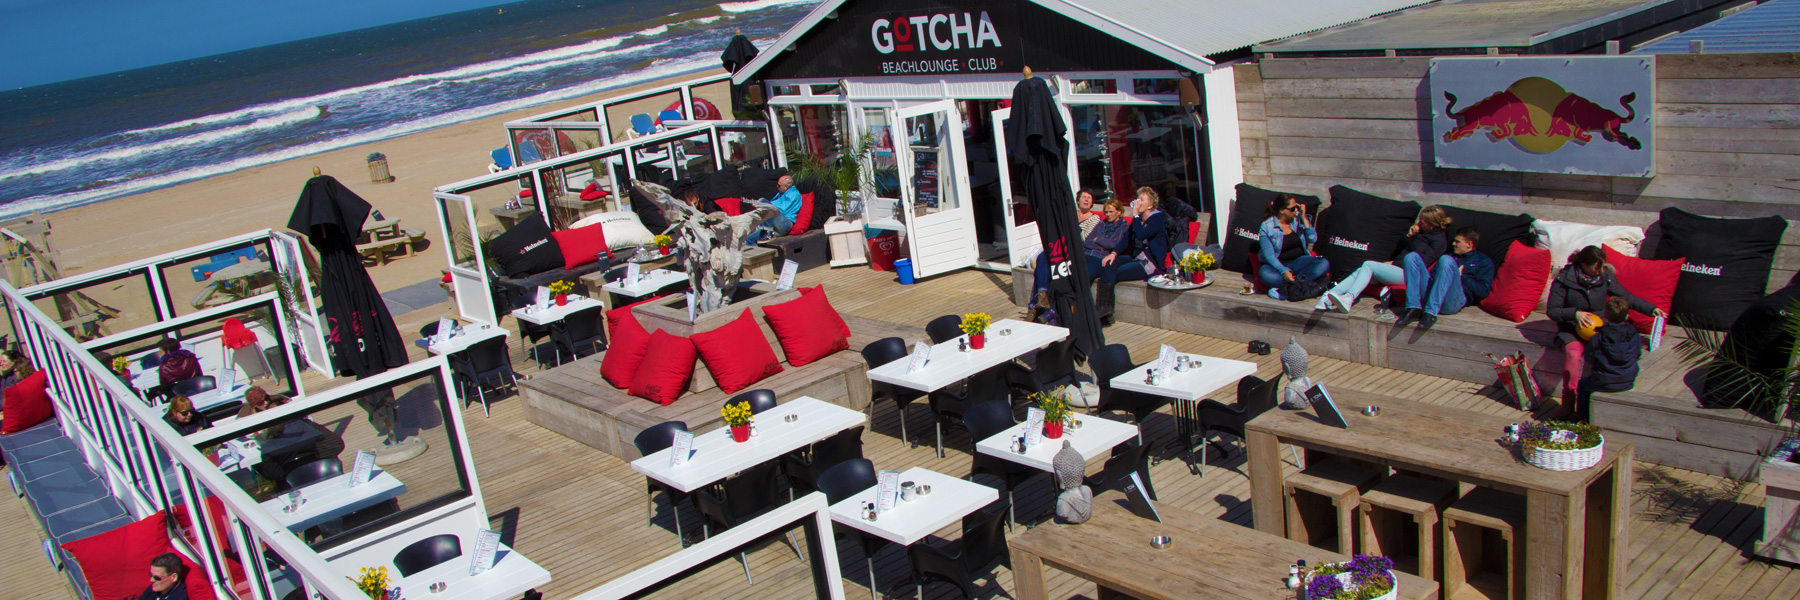 GOTCHA BEACHLOUNGE CLUB en ZIPPERS BEACH VERKOCHT